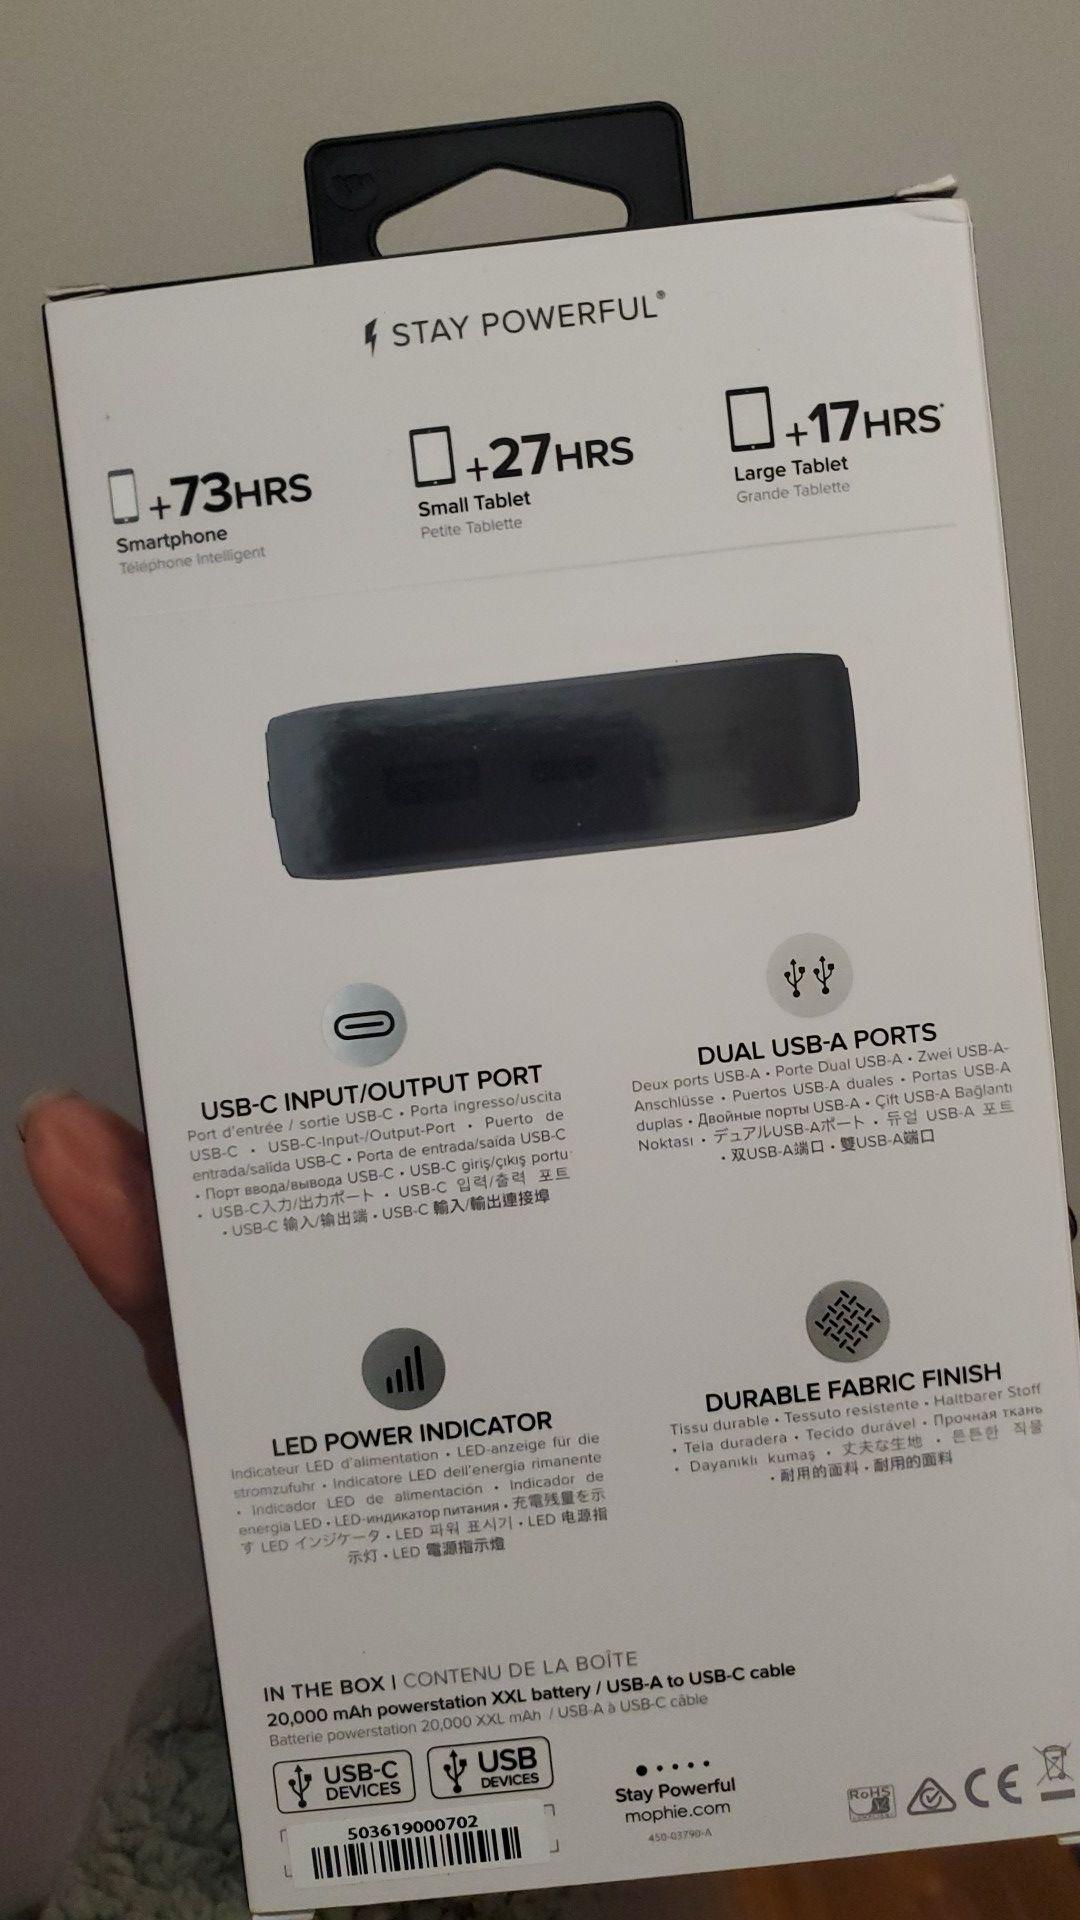 MOPHIE XXL PORTABLE CHARGER